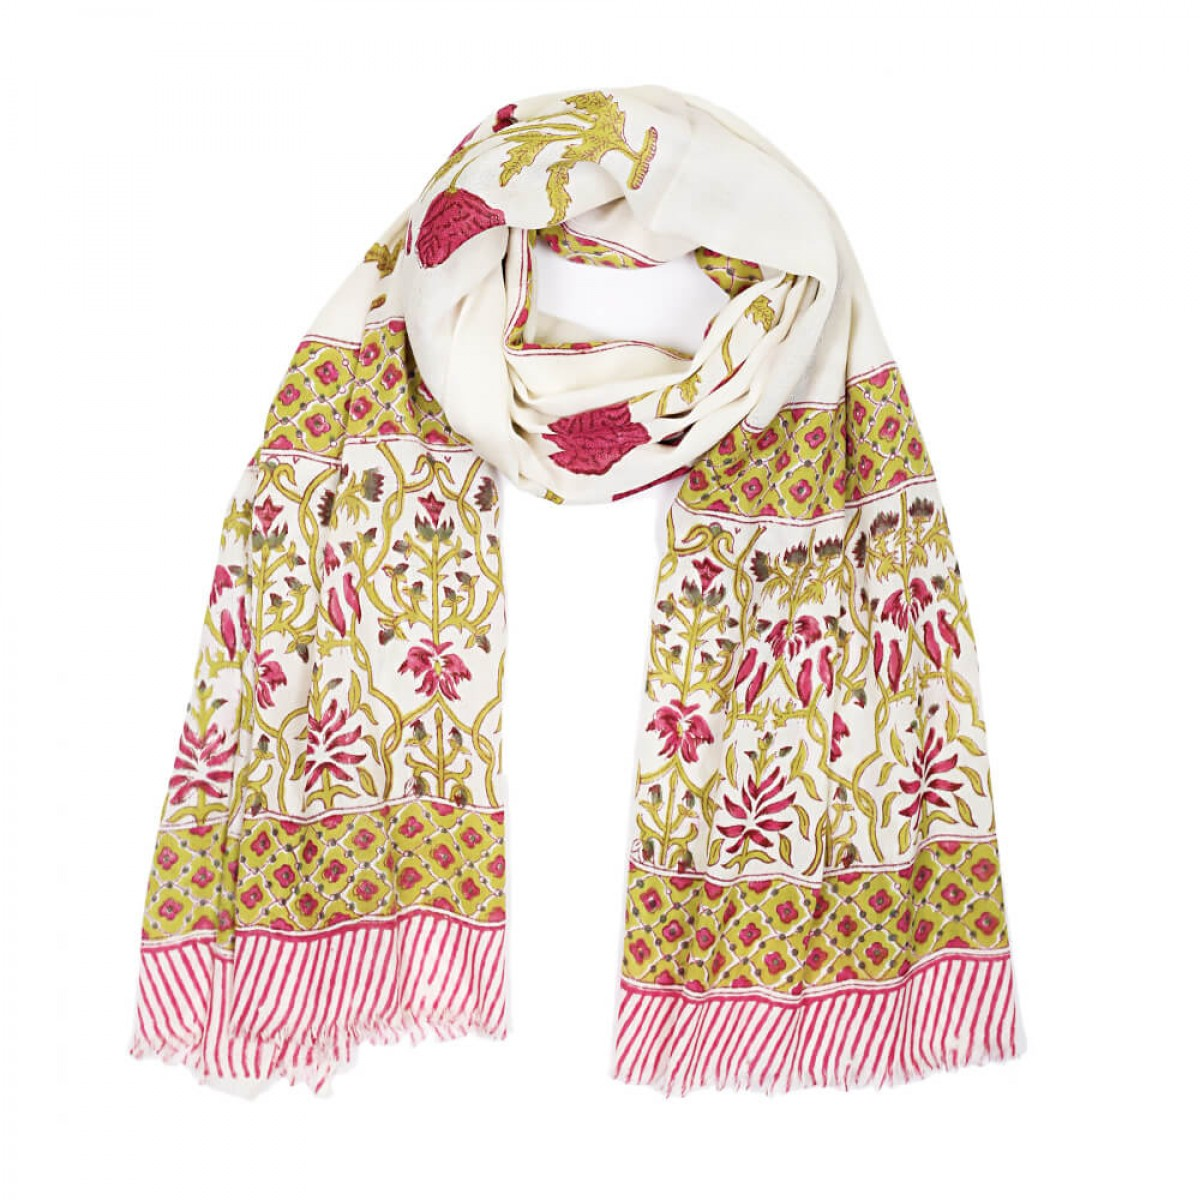 Block Printed Woolen Shawl - Rose